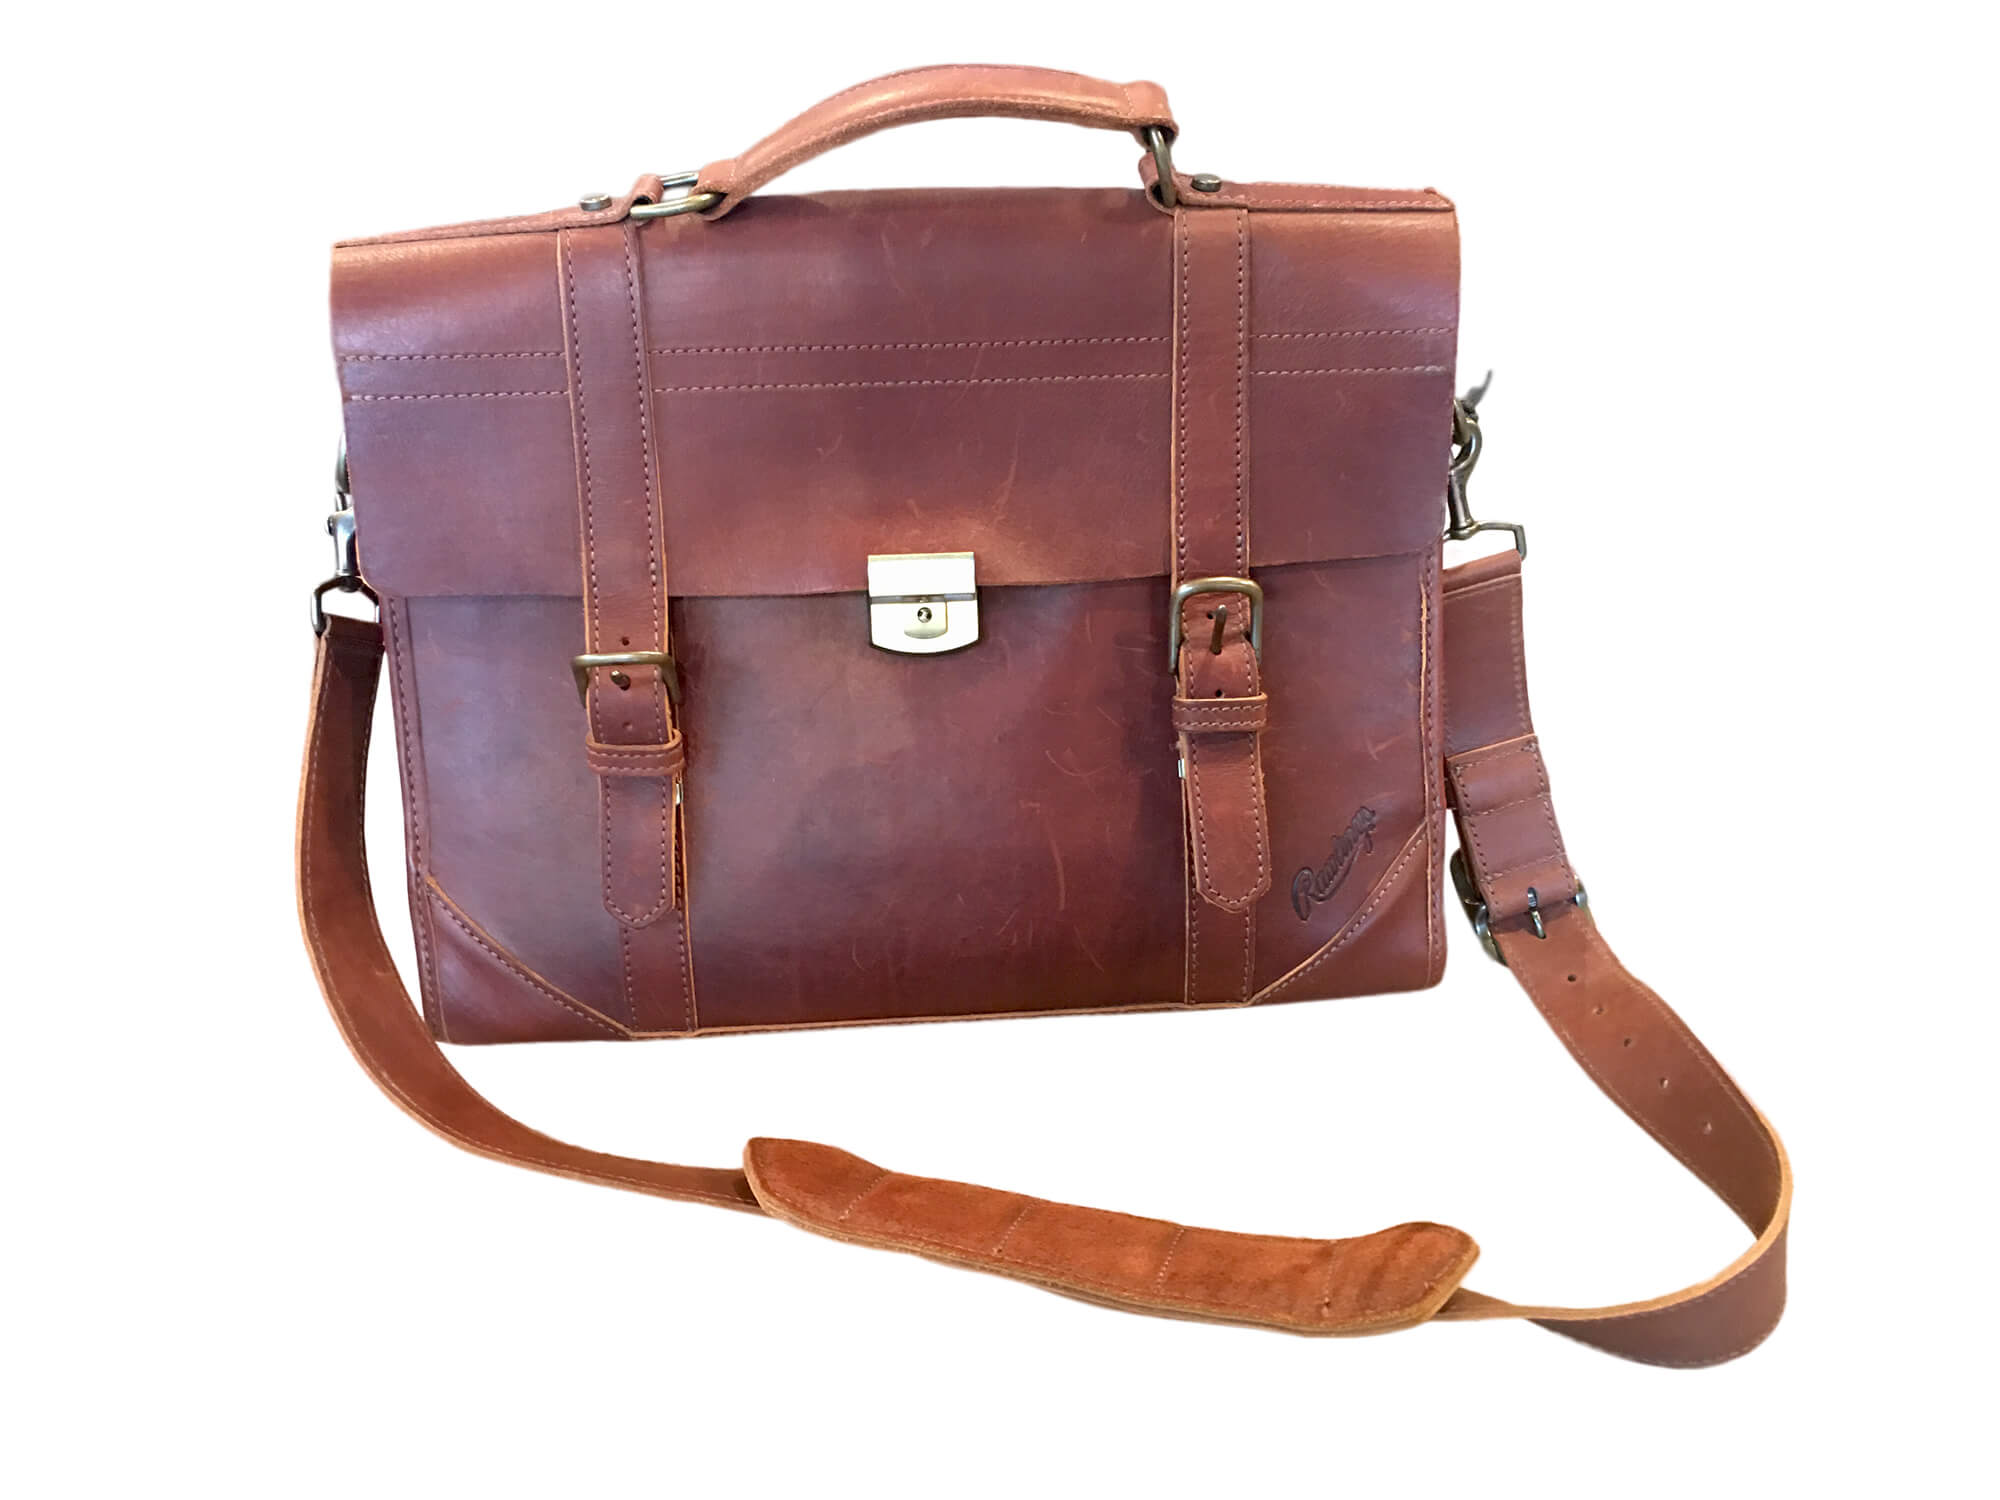 Rawlings messenger bag